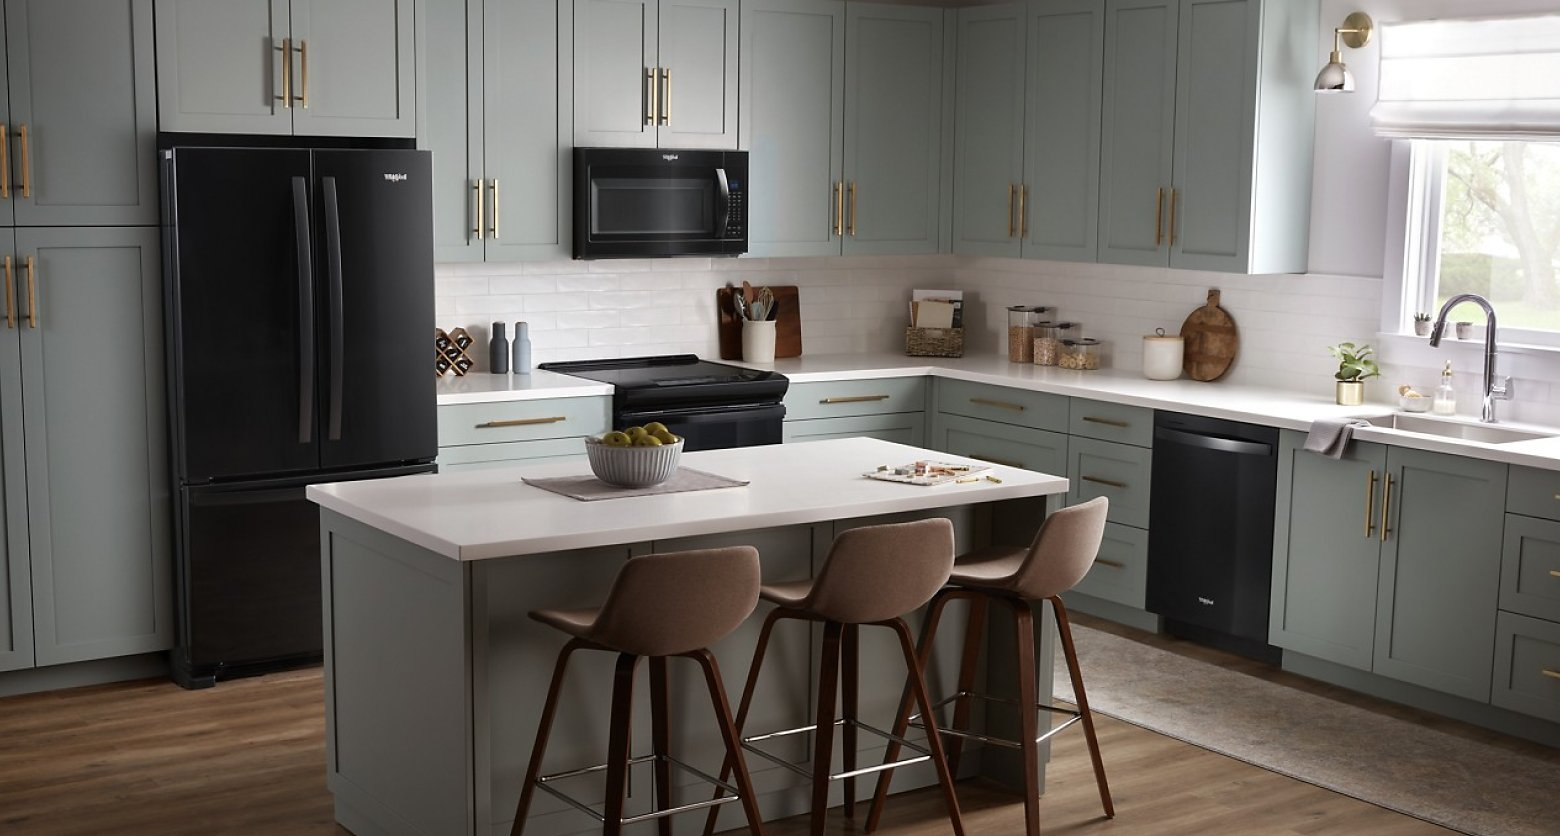 Gray kitchen featuring Whirlpool®  appliances in black